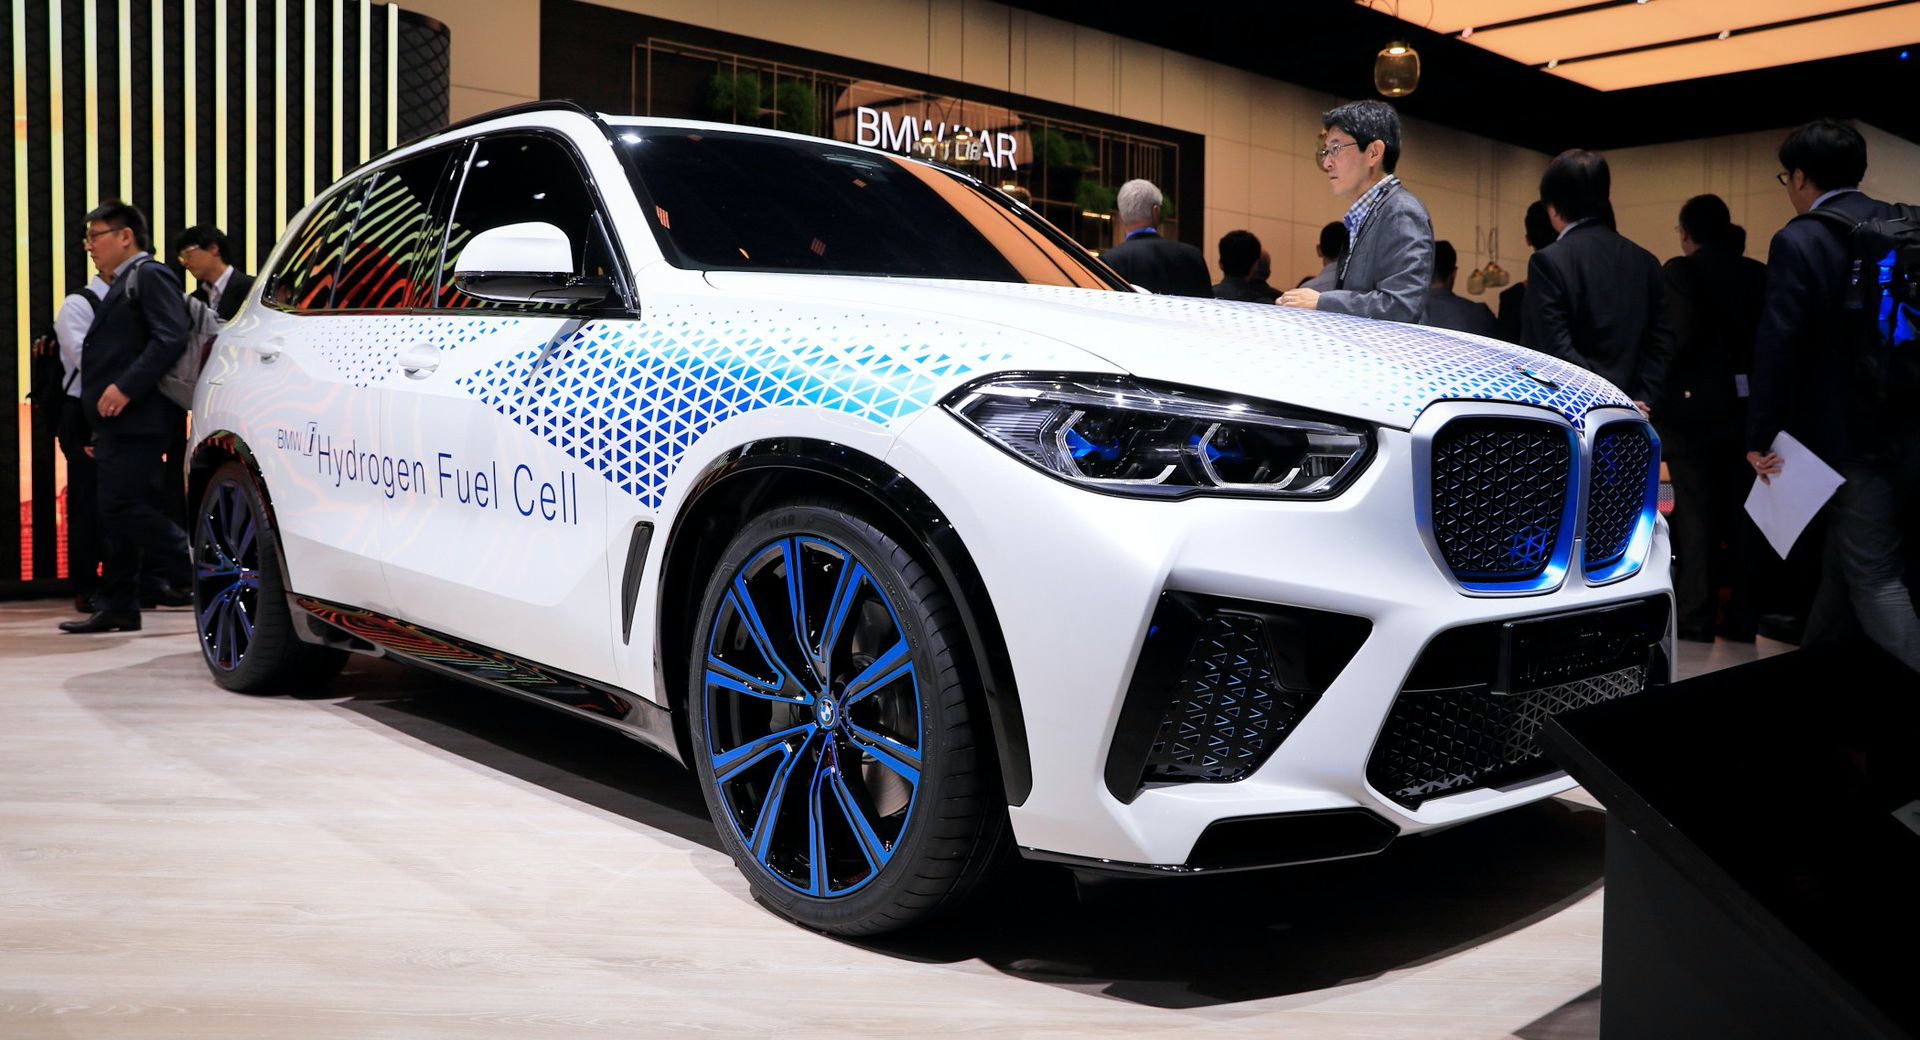 Hydrogen-Powered Bmw X5 Confirmed For 2022 With 369 Hp